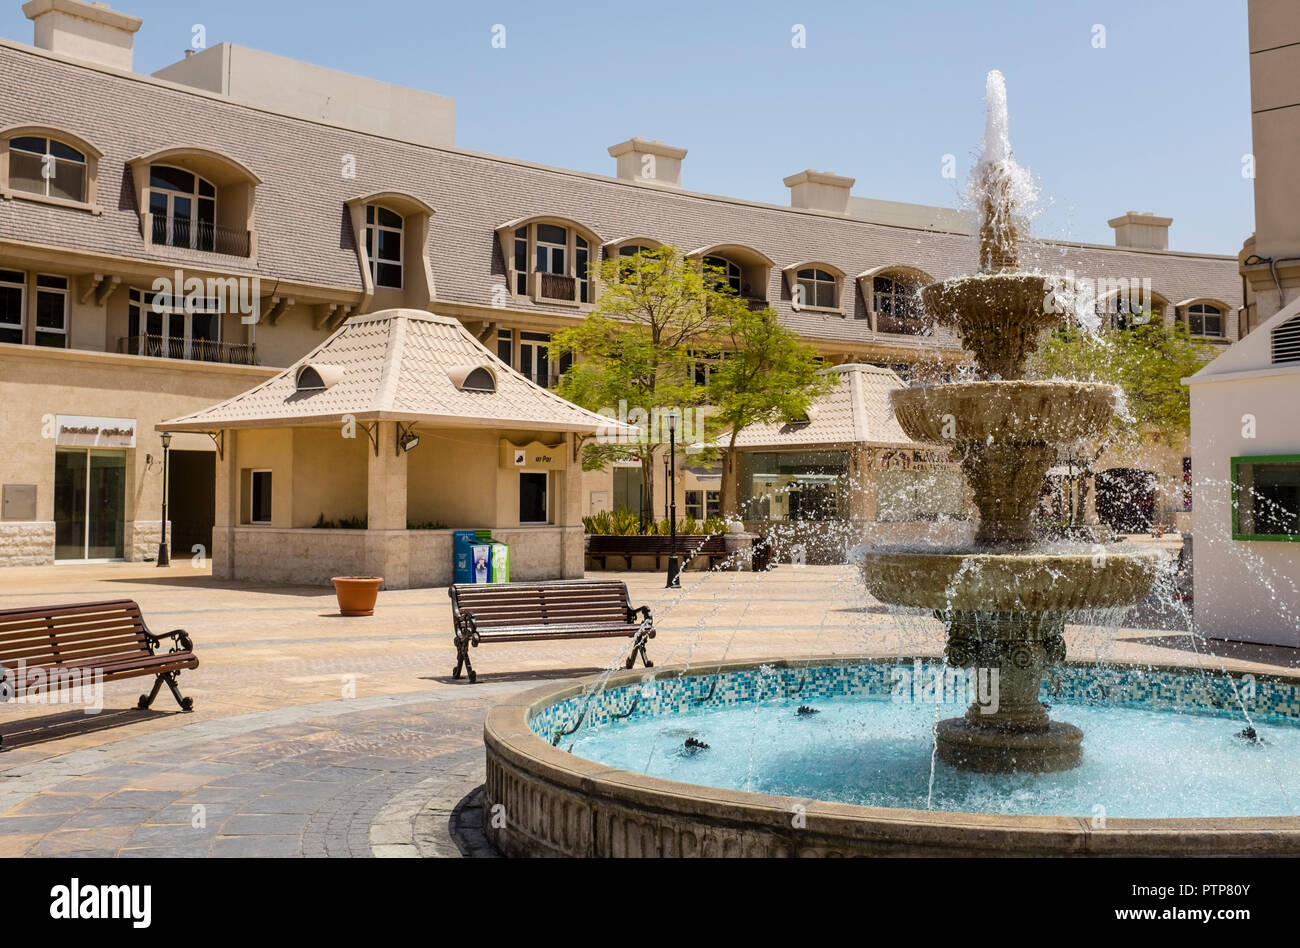 Uptown Mirdiff Mall, in the Mirdiff district of Dubai. The mall provides shops and cafes for the nearby residential estates - Stock Image